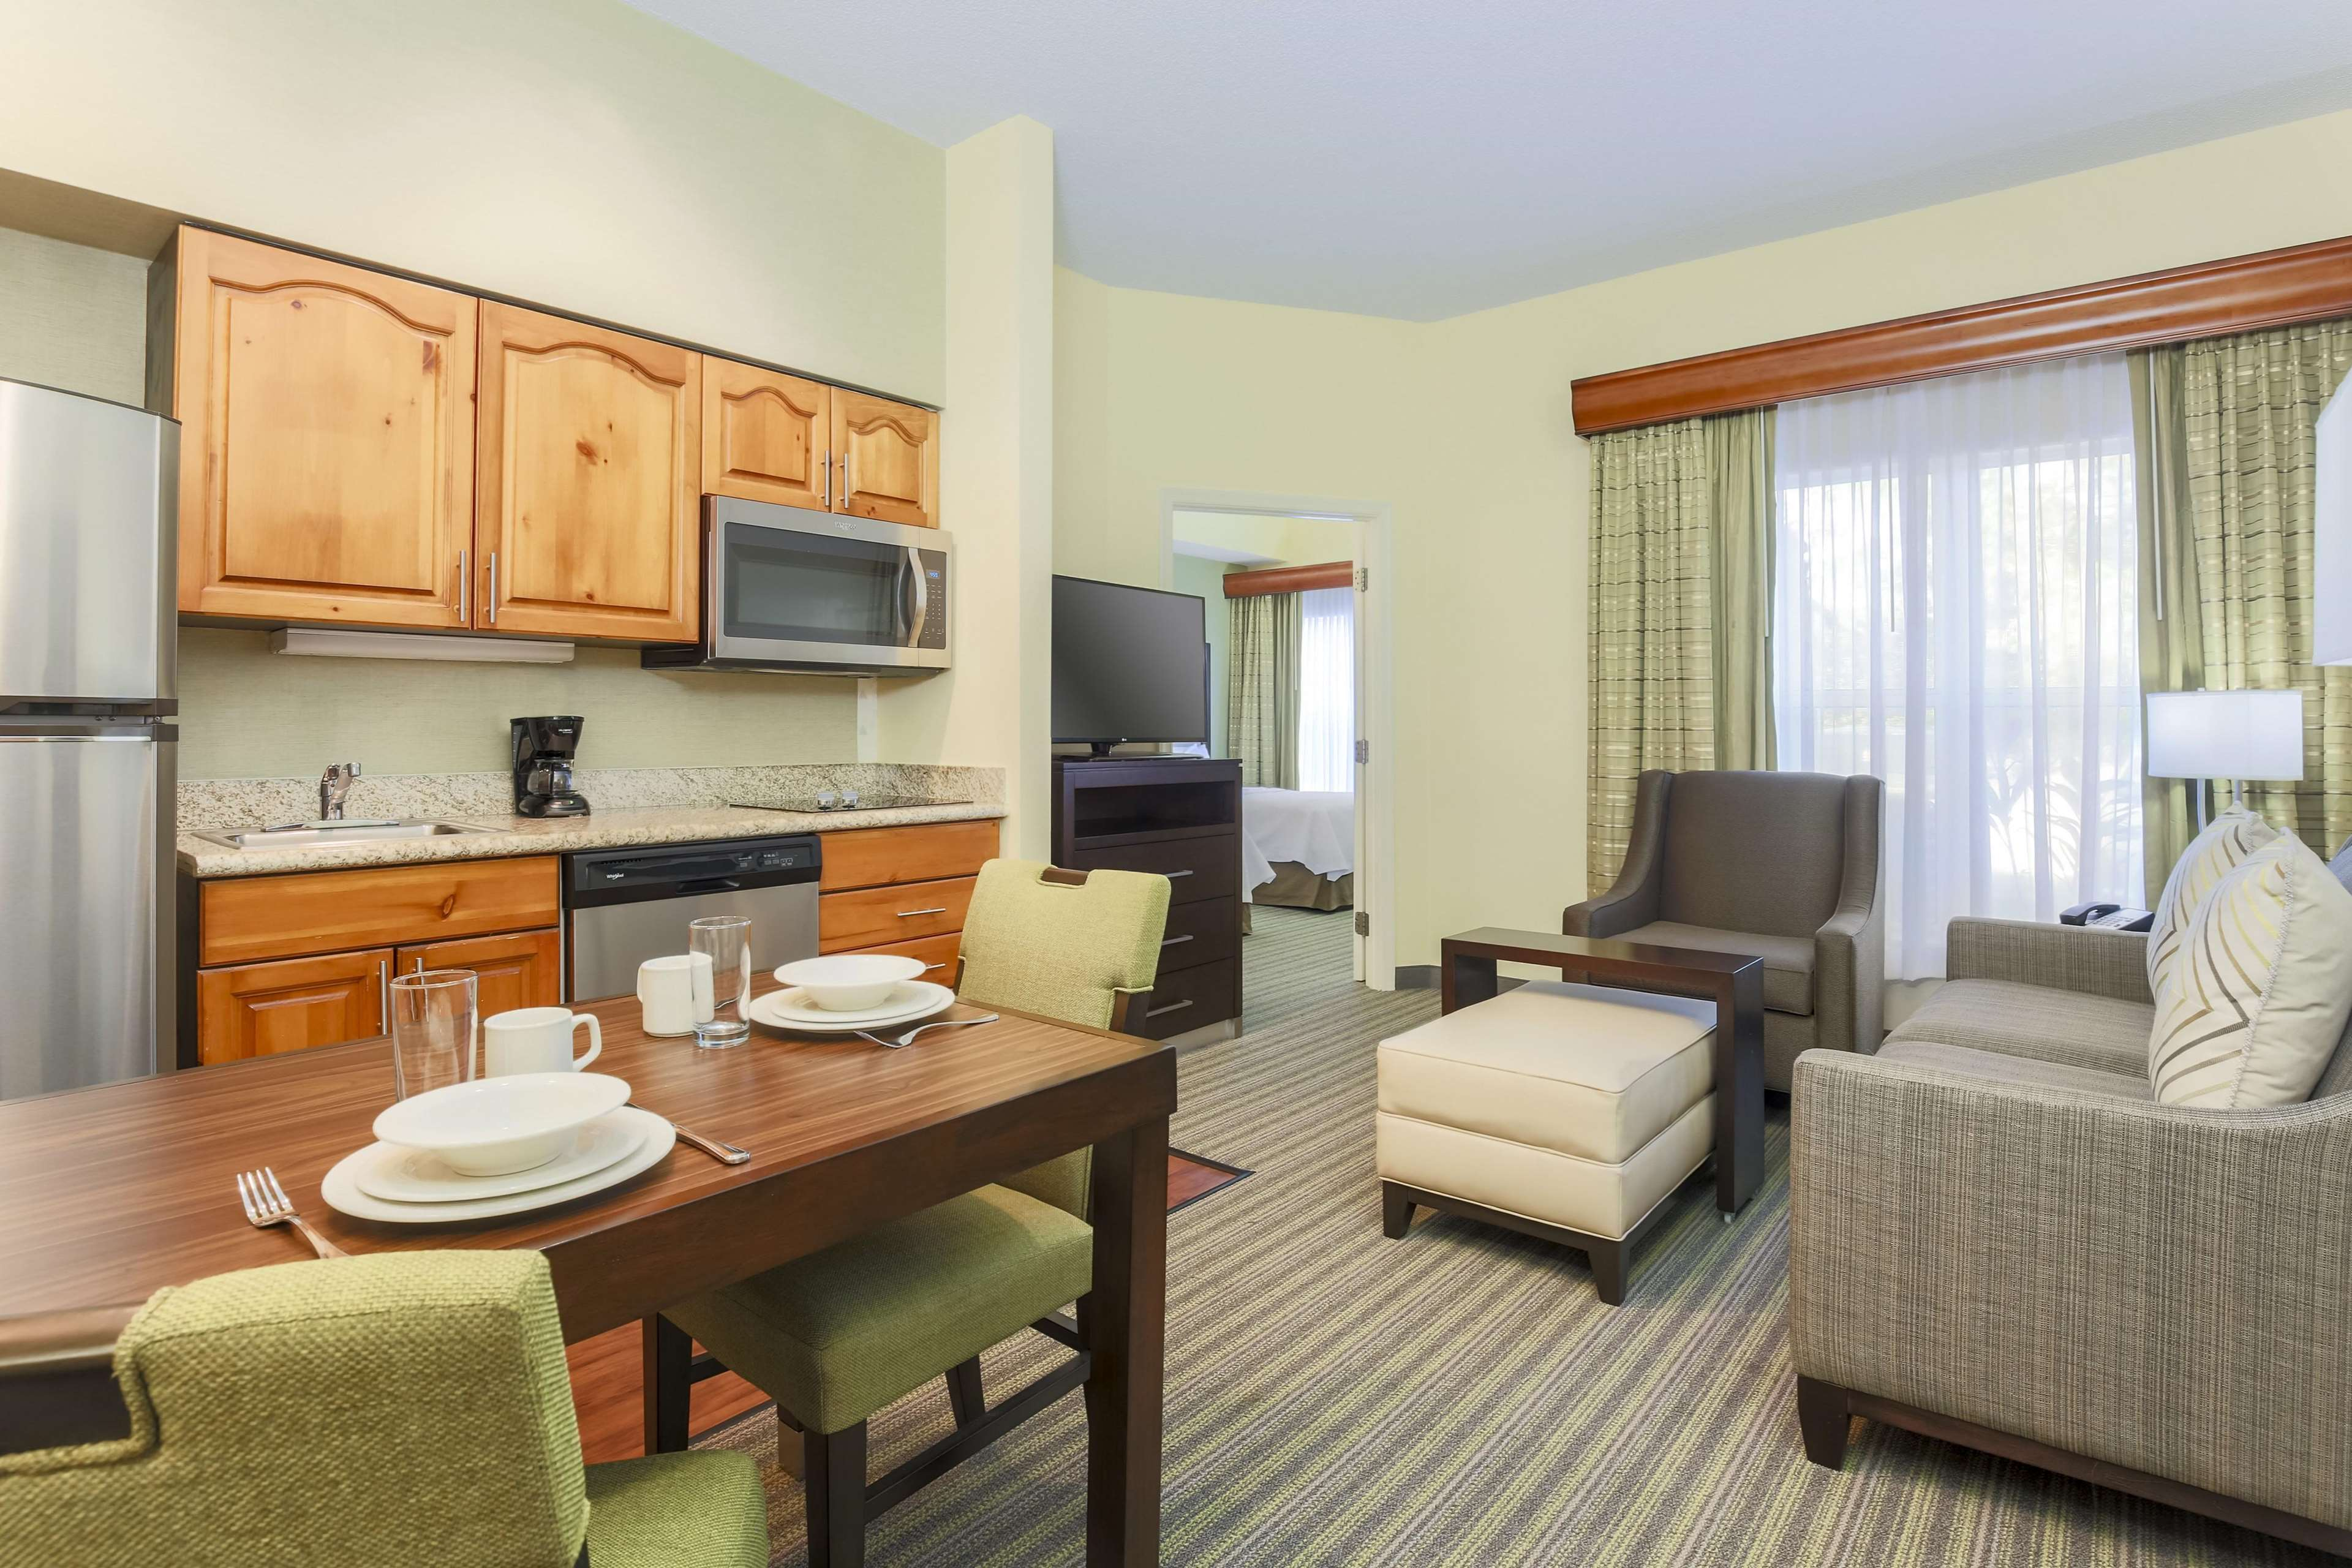 Homewood Suites by Hilton St. Petersburg Clearwater image 28